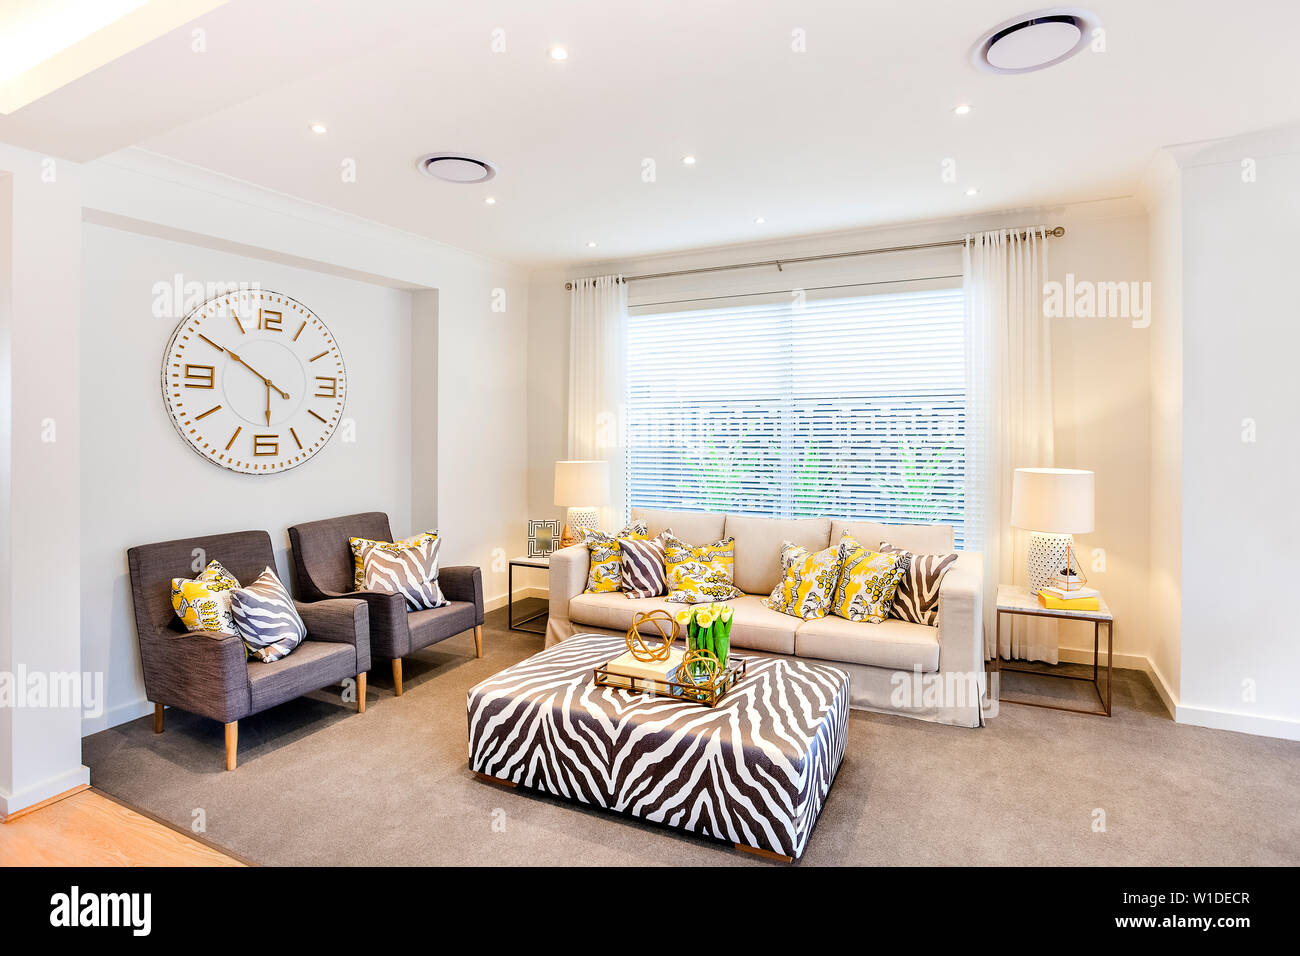 Picture of: Living Room With A Stylish Sofa Set And A Quirky Center Table With Grey Carpeting And Wall Clock Behind The Sofa Chairs Stock Photo Alamy